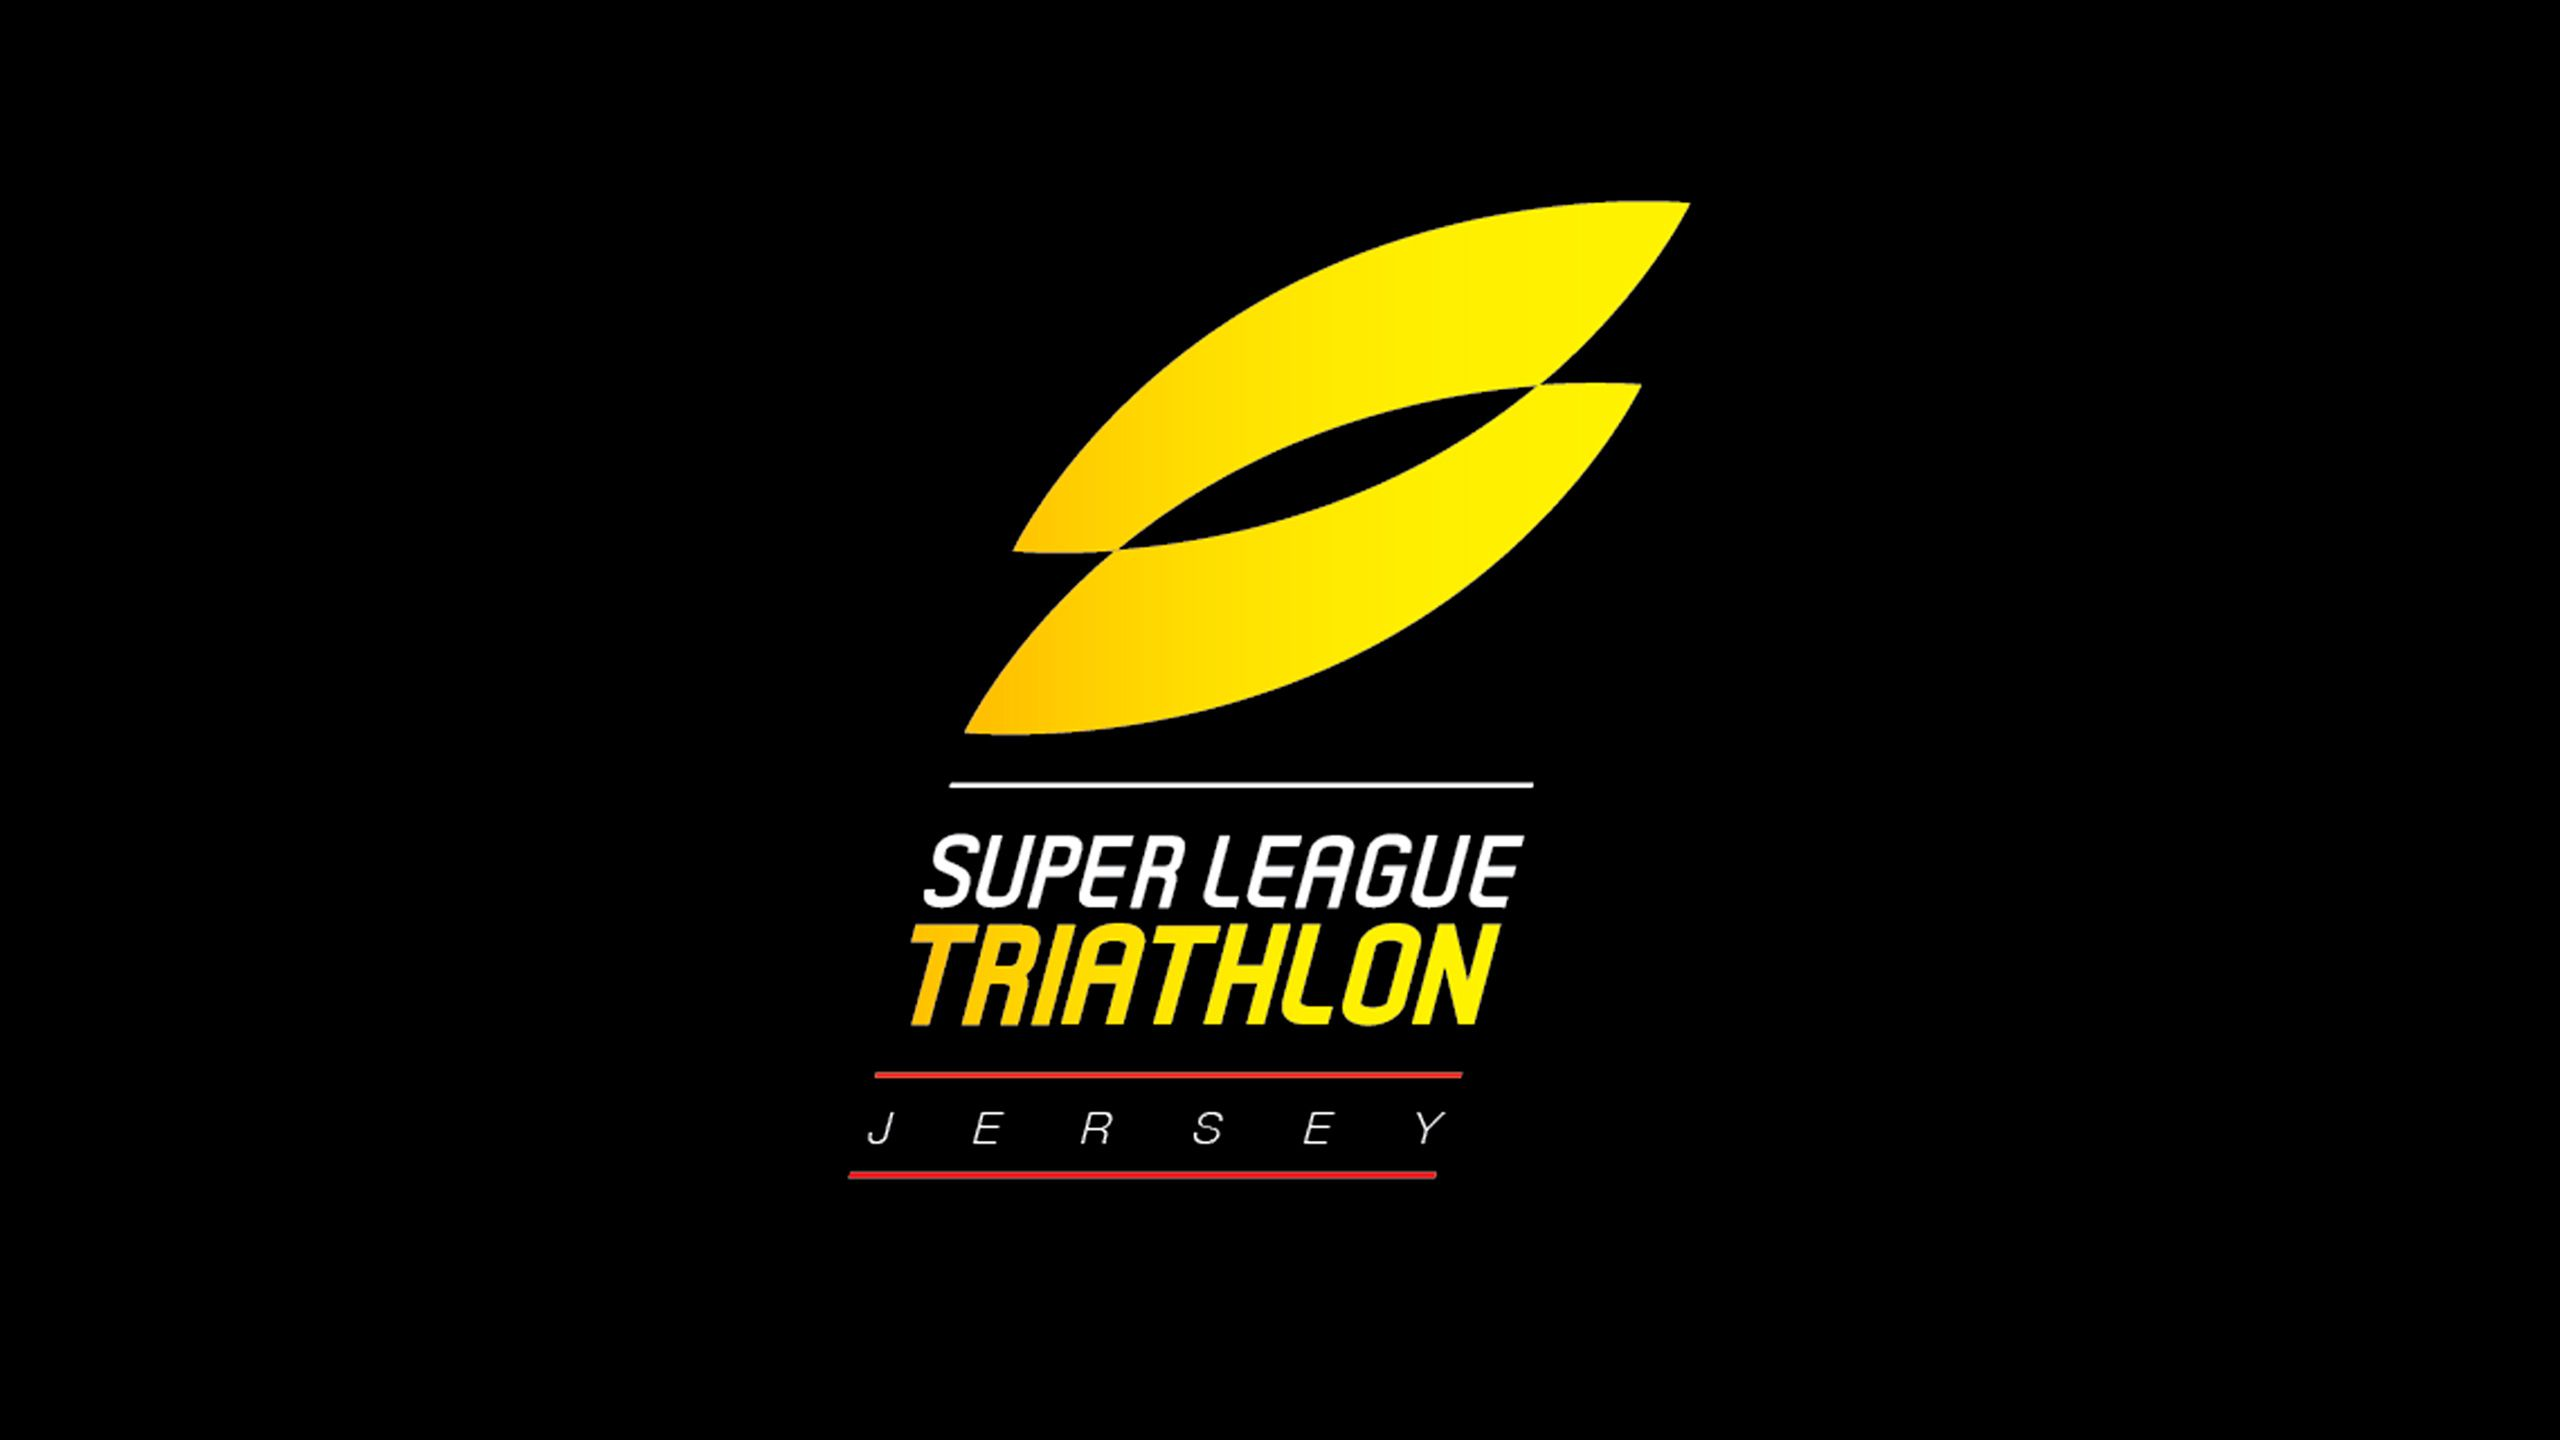 Super League Triathlon: Jersey (Women's Triple Mix)